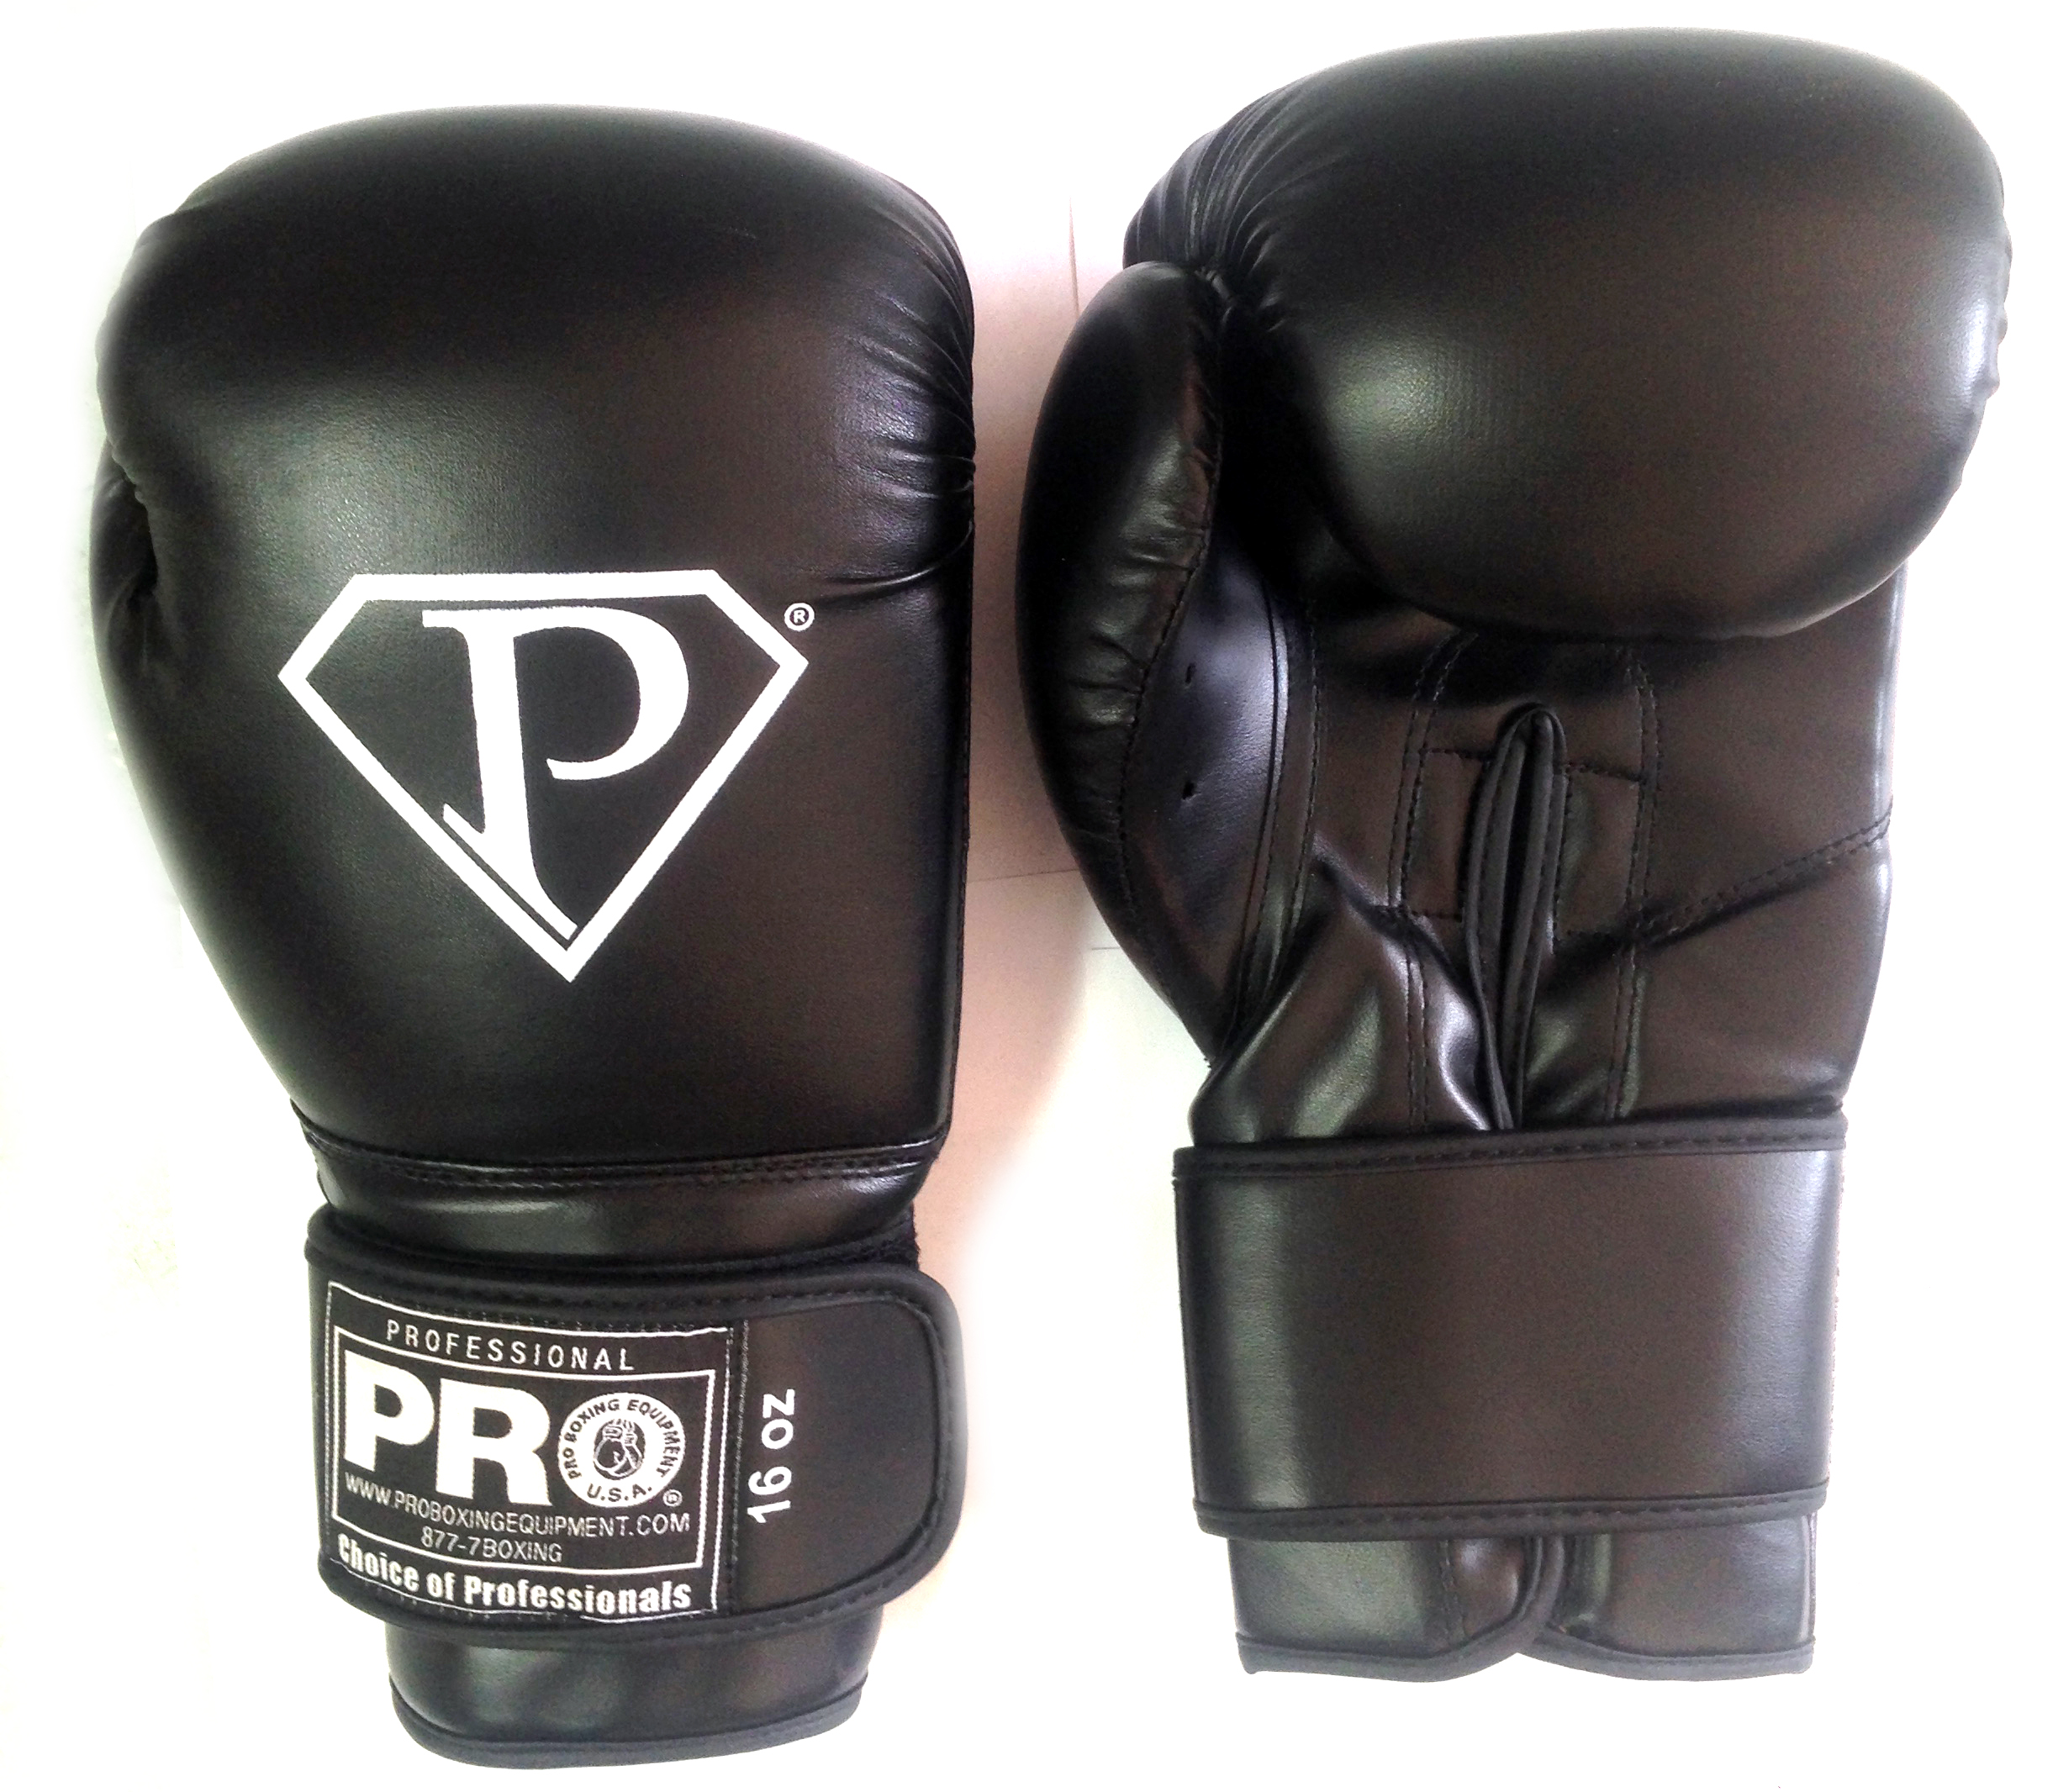 Boking Gloves: Boxing Gloves Free Shipping In The USA! Limited Time Offer